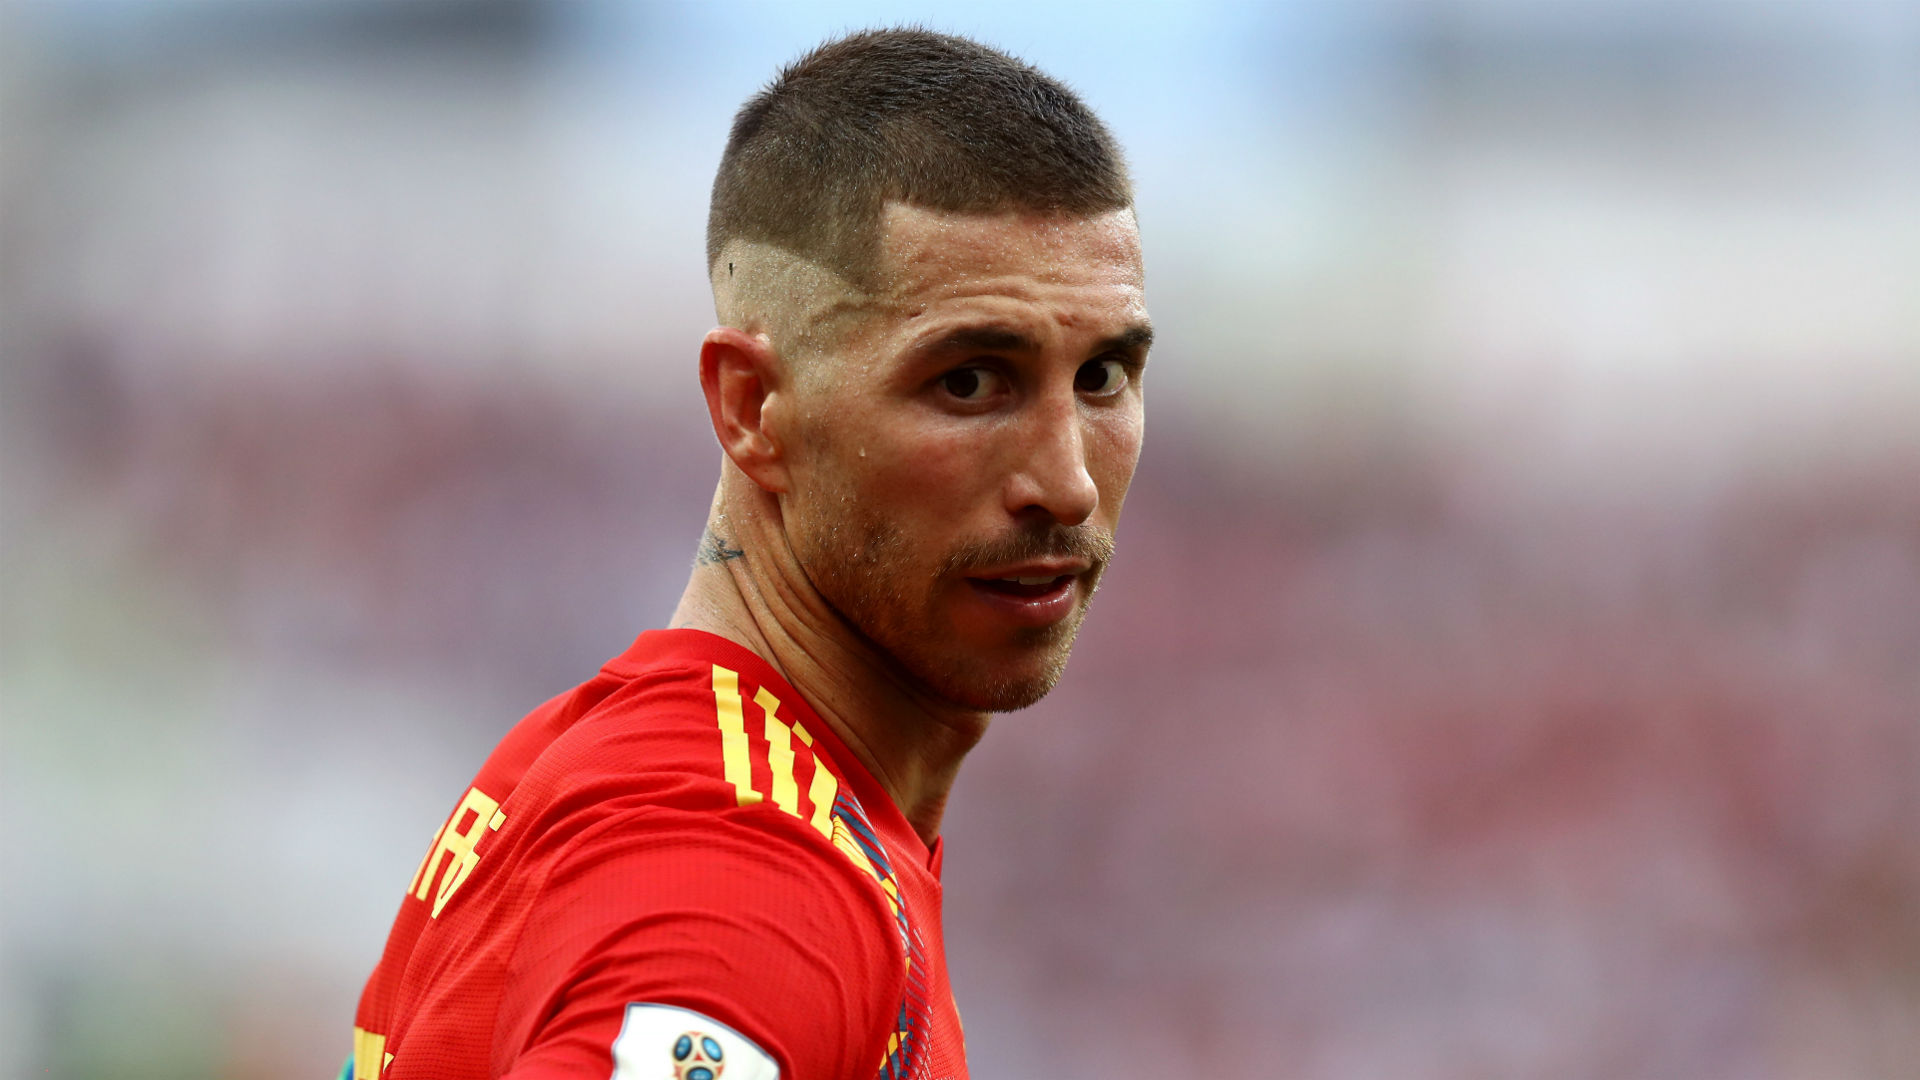 Spain vs. Russia - Football Match Report